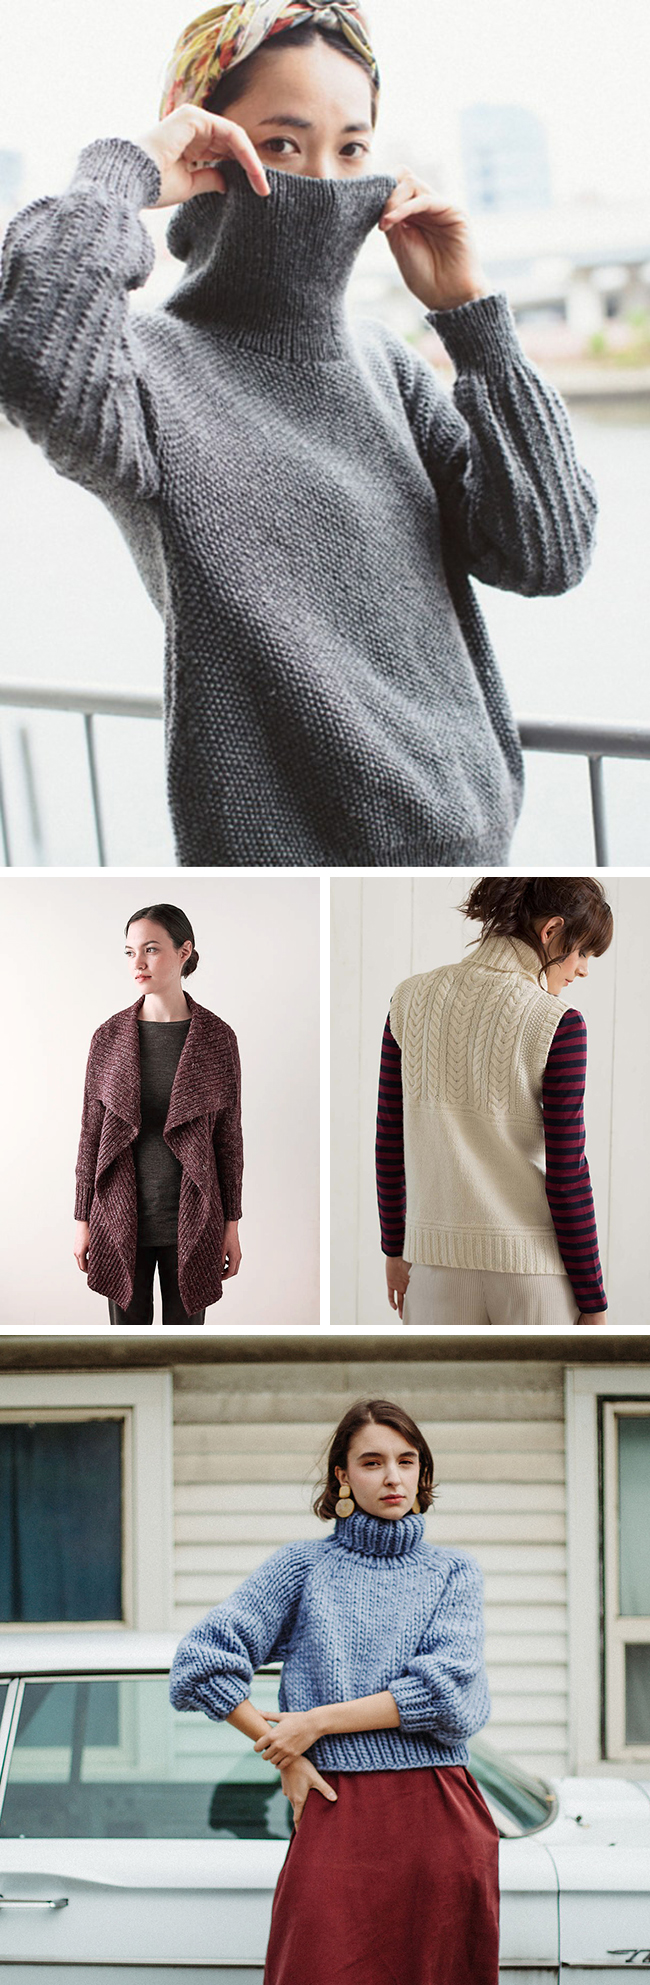 Best sweater knitting patterns